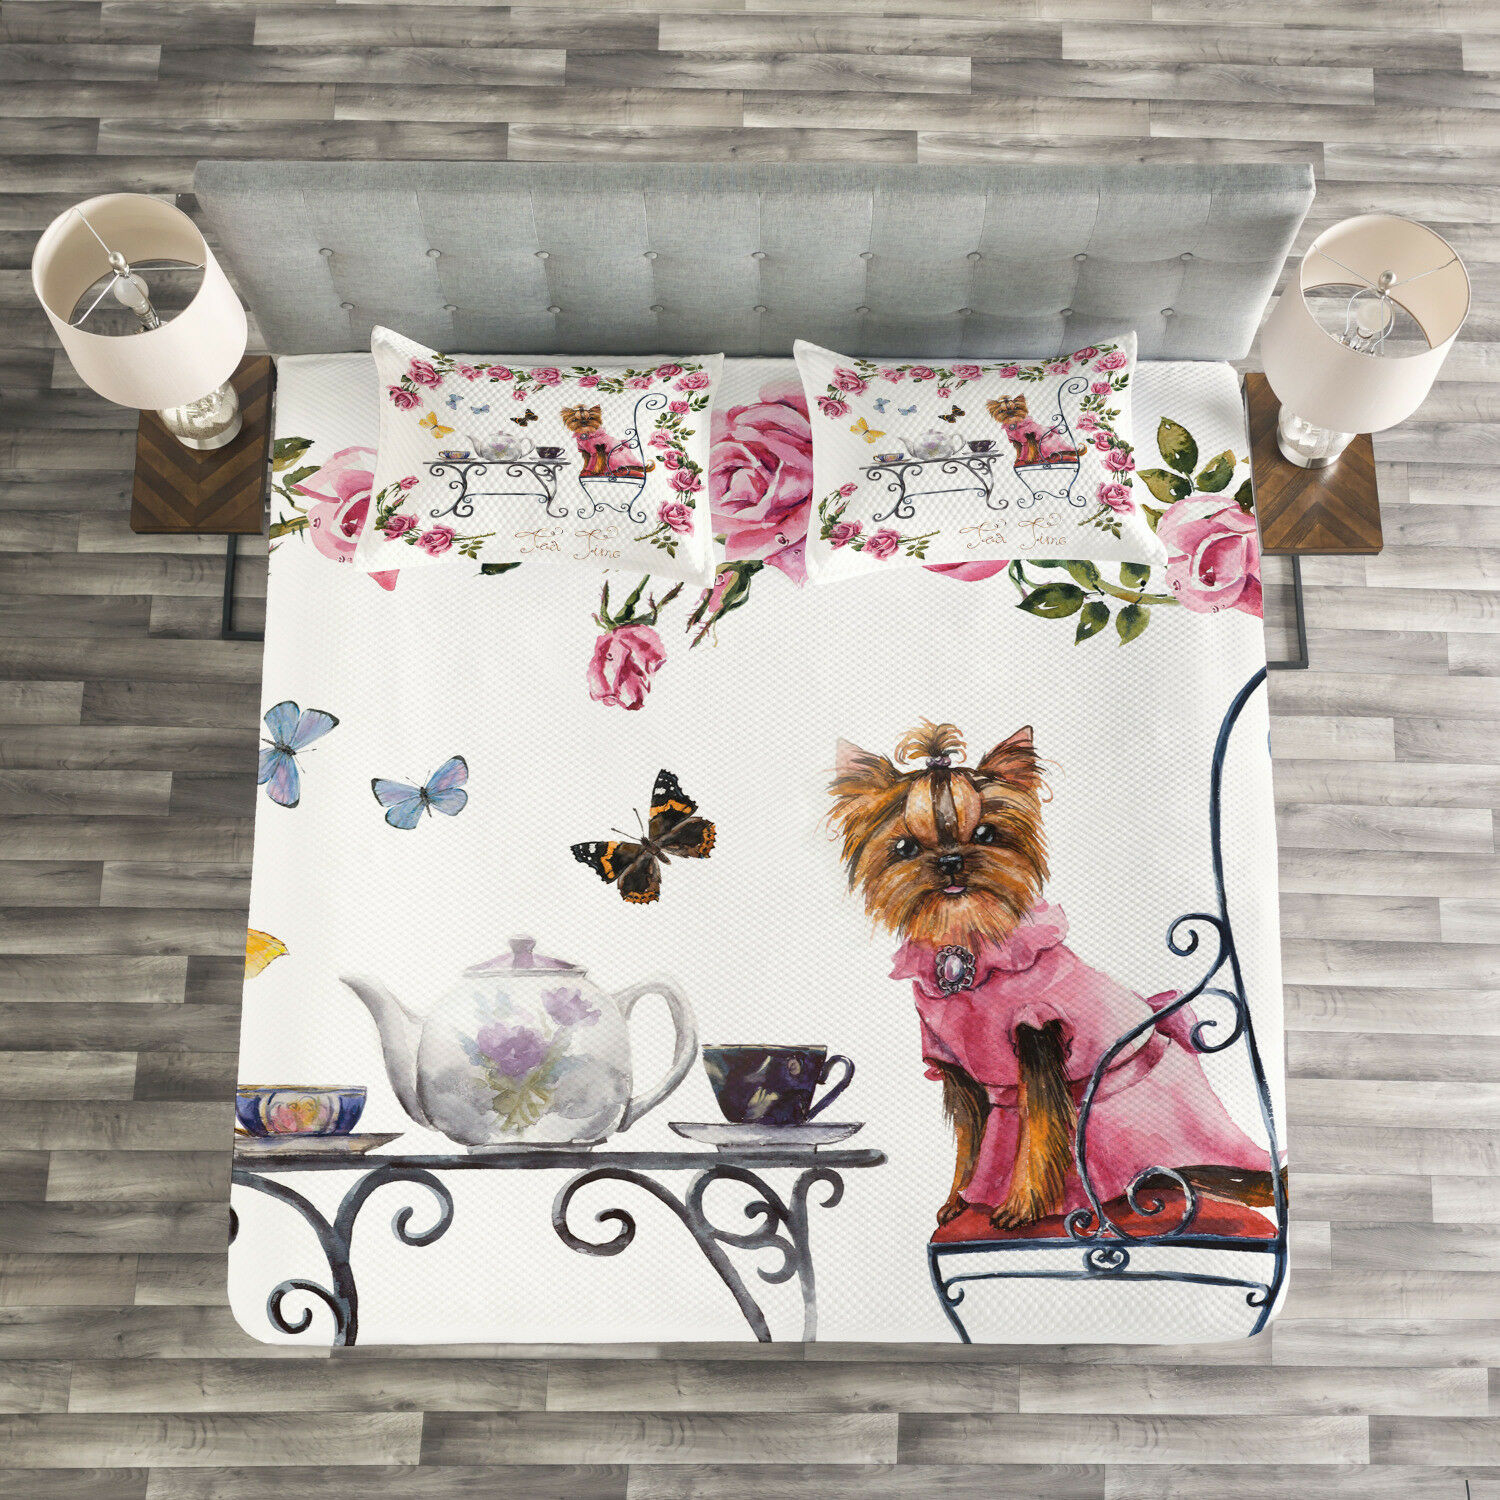 Yorkie Quilted Bedspread & Pillow Shams Set, Terrier in Pink Dress Print